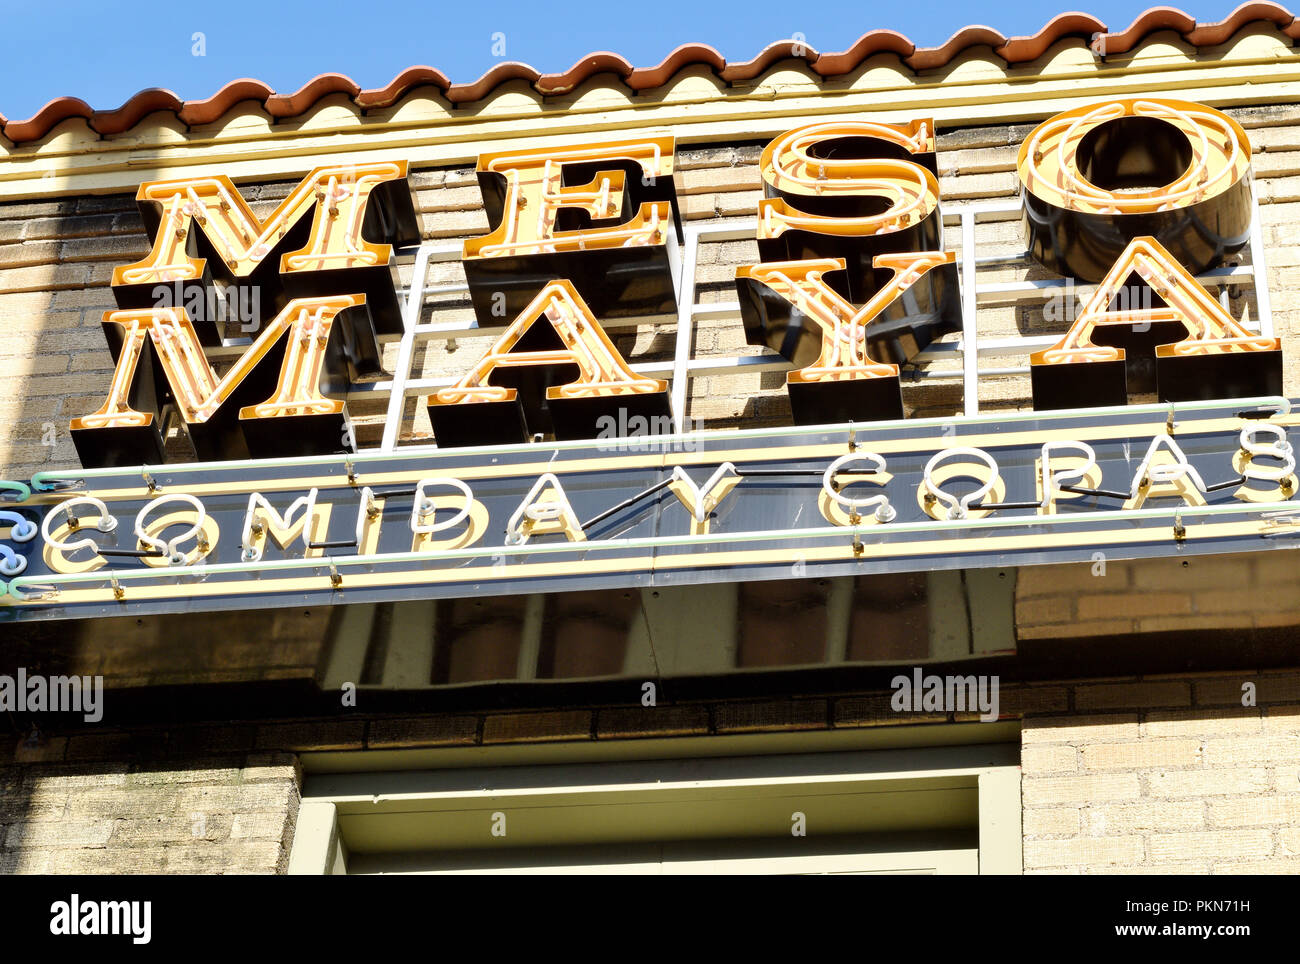 Misomaya Mexican Restaurant Sign In Downtown Dallas Texas